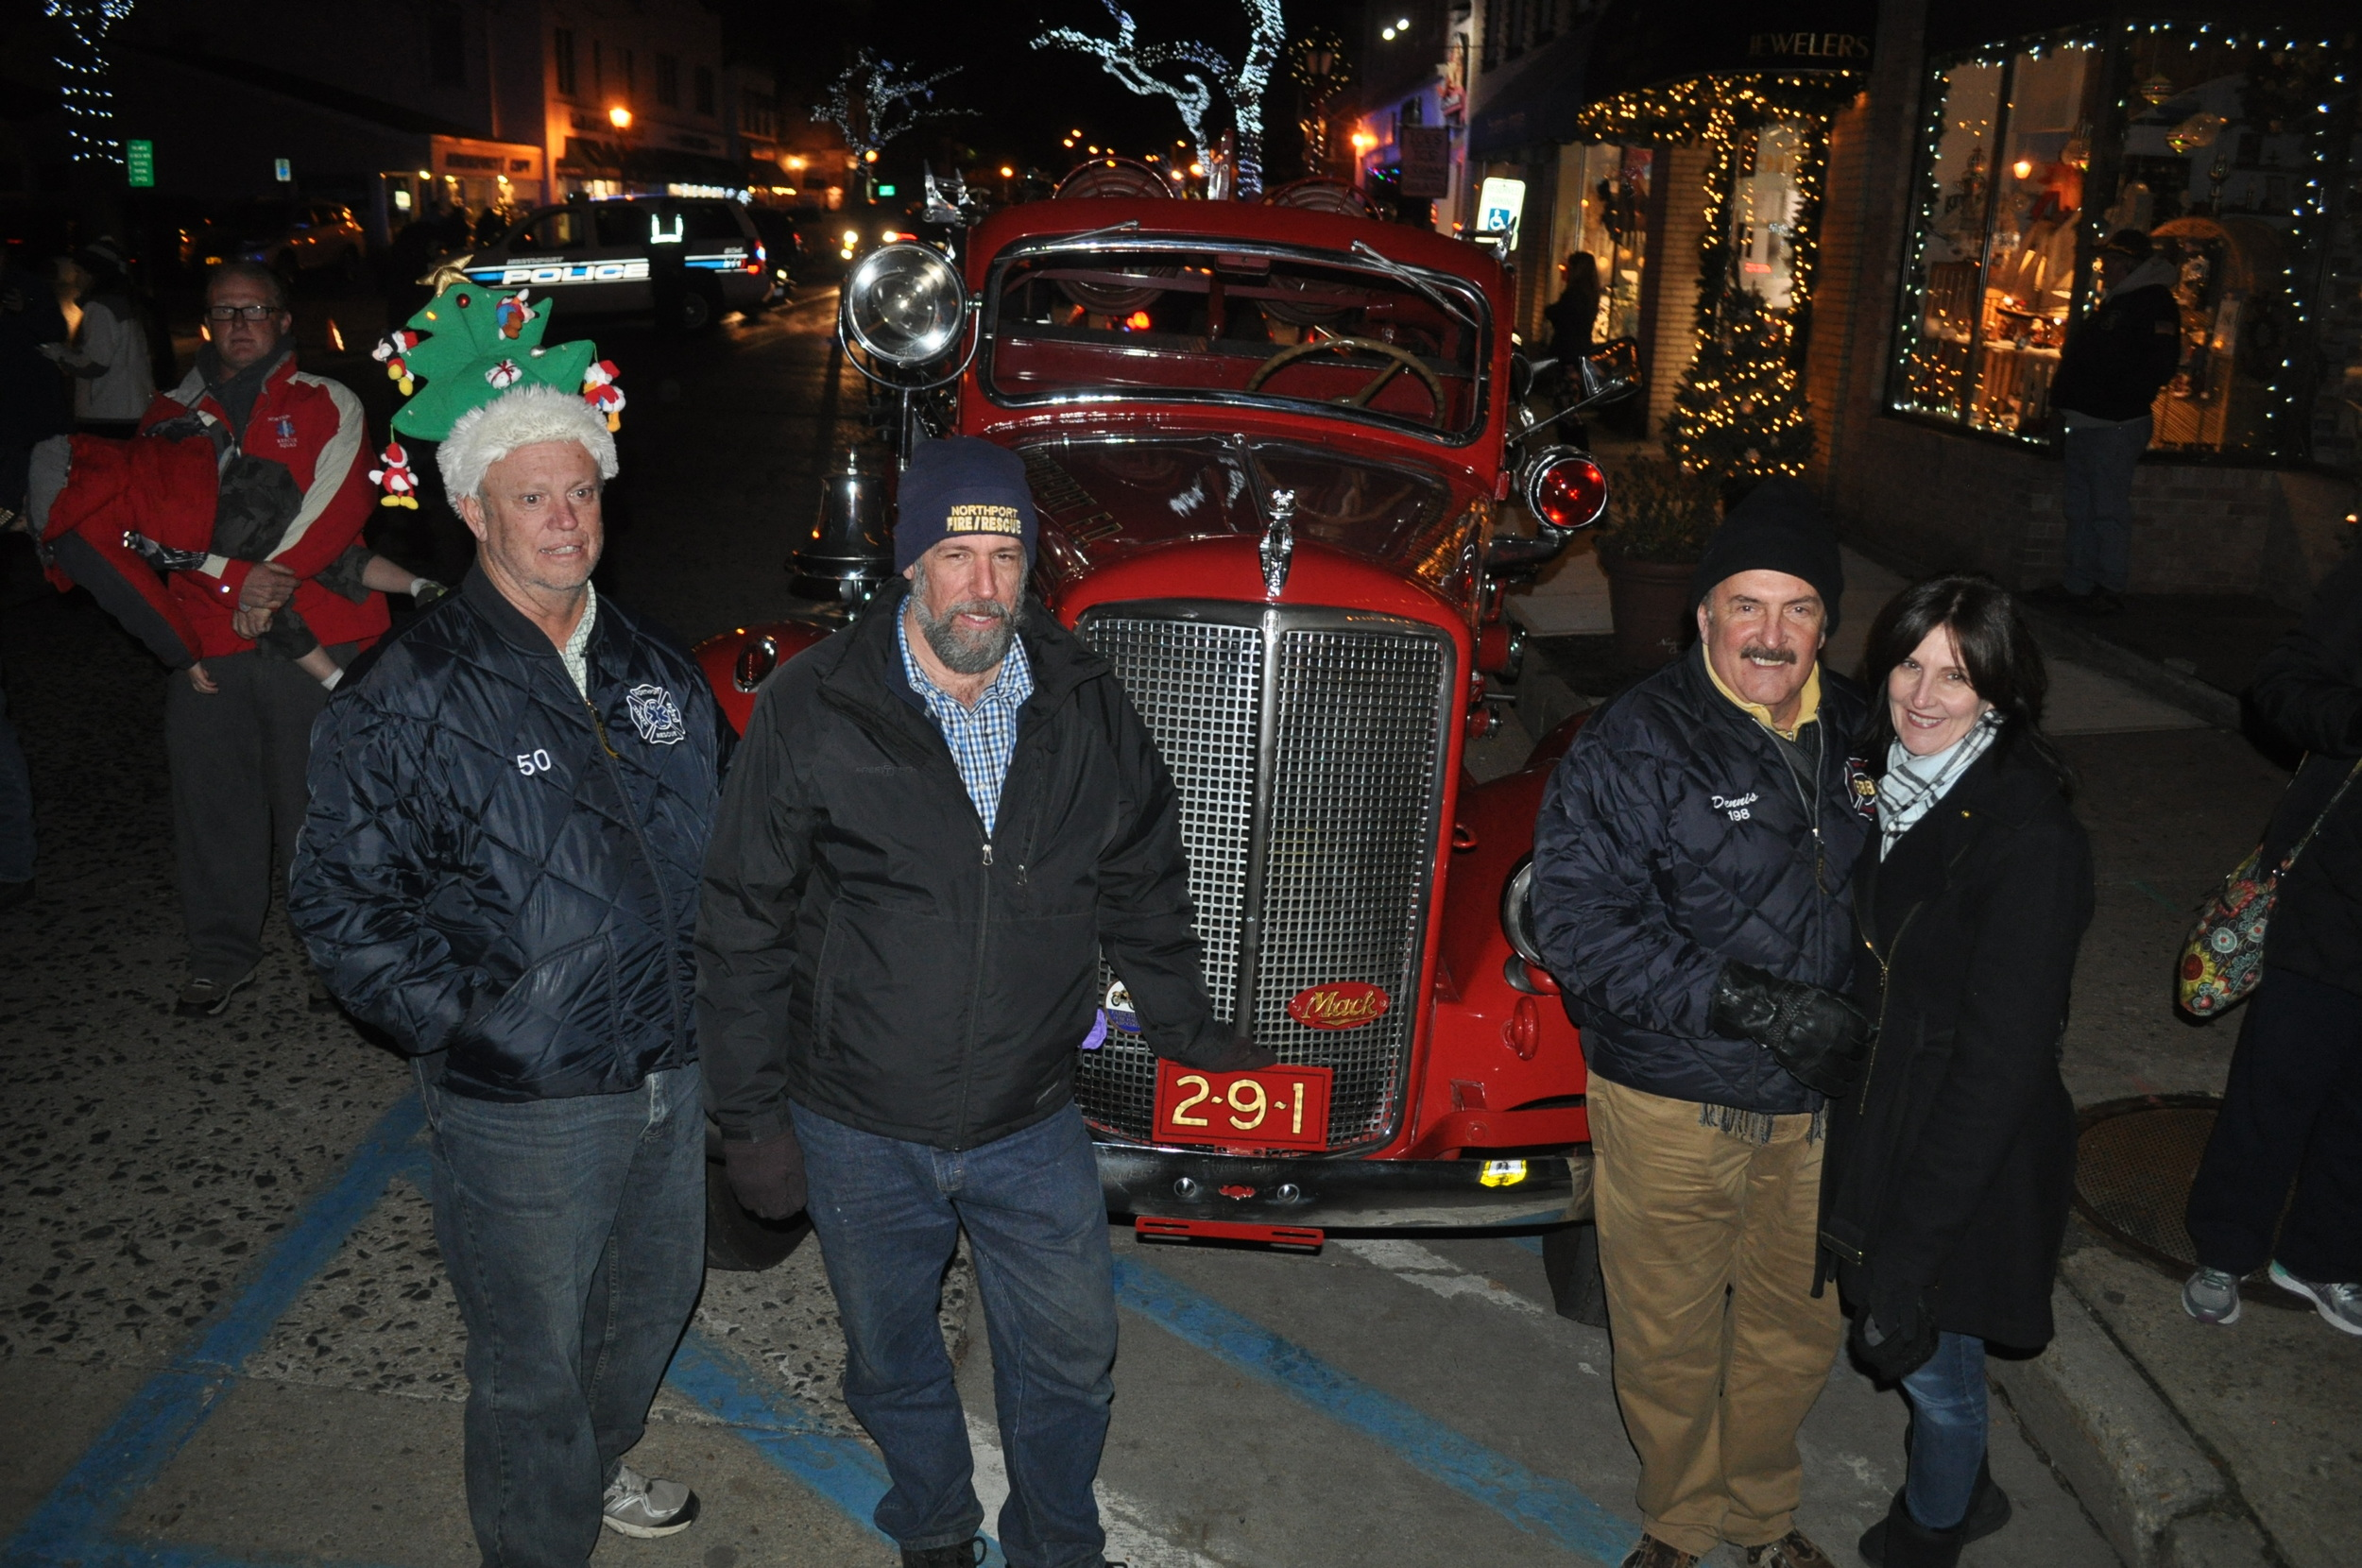 Northport Fire Department volunteers bring a vintage 1948 Mack truck to the festivities.